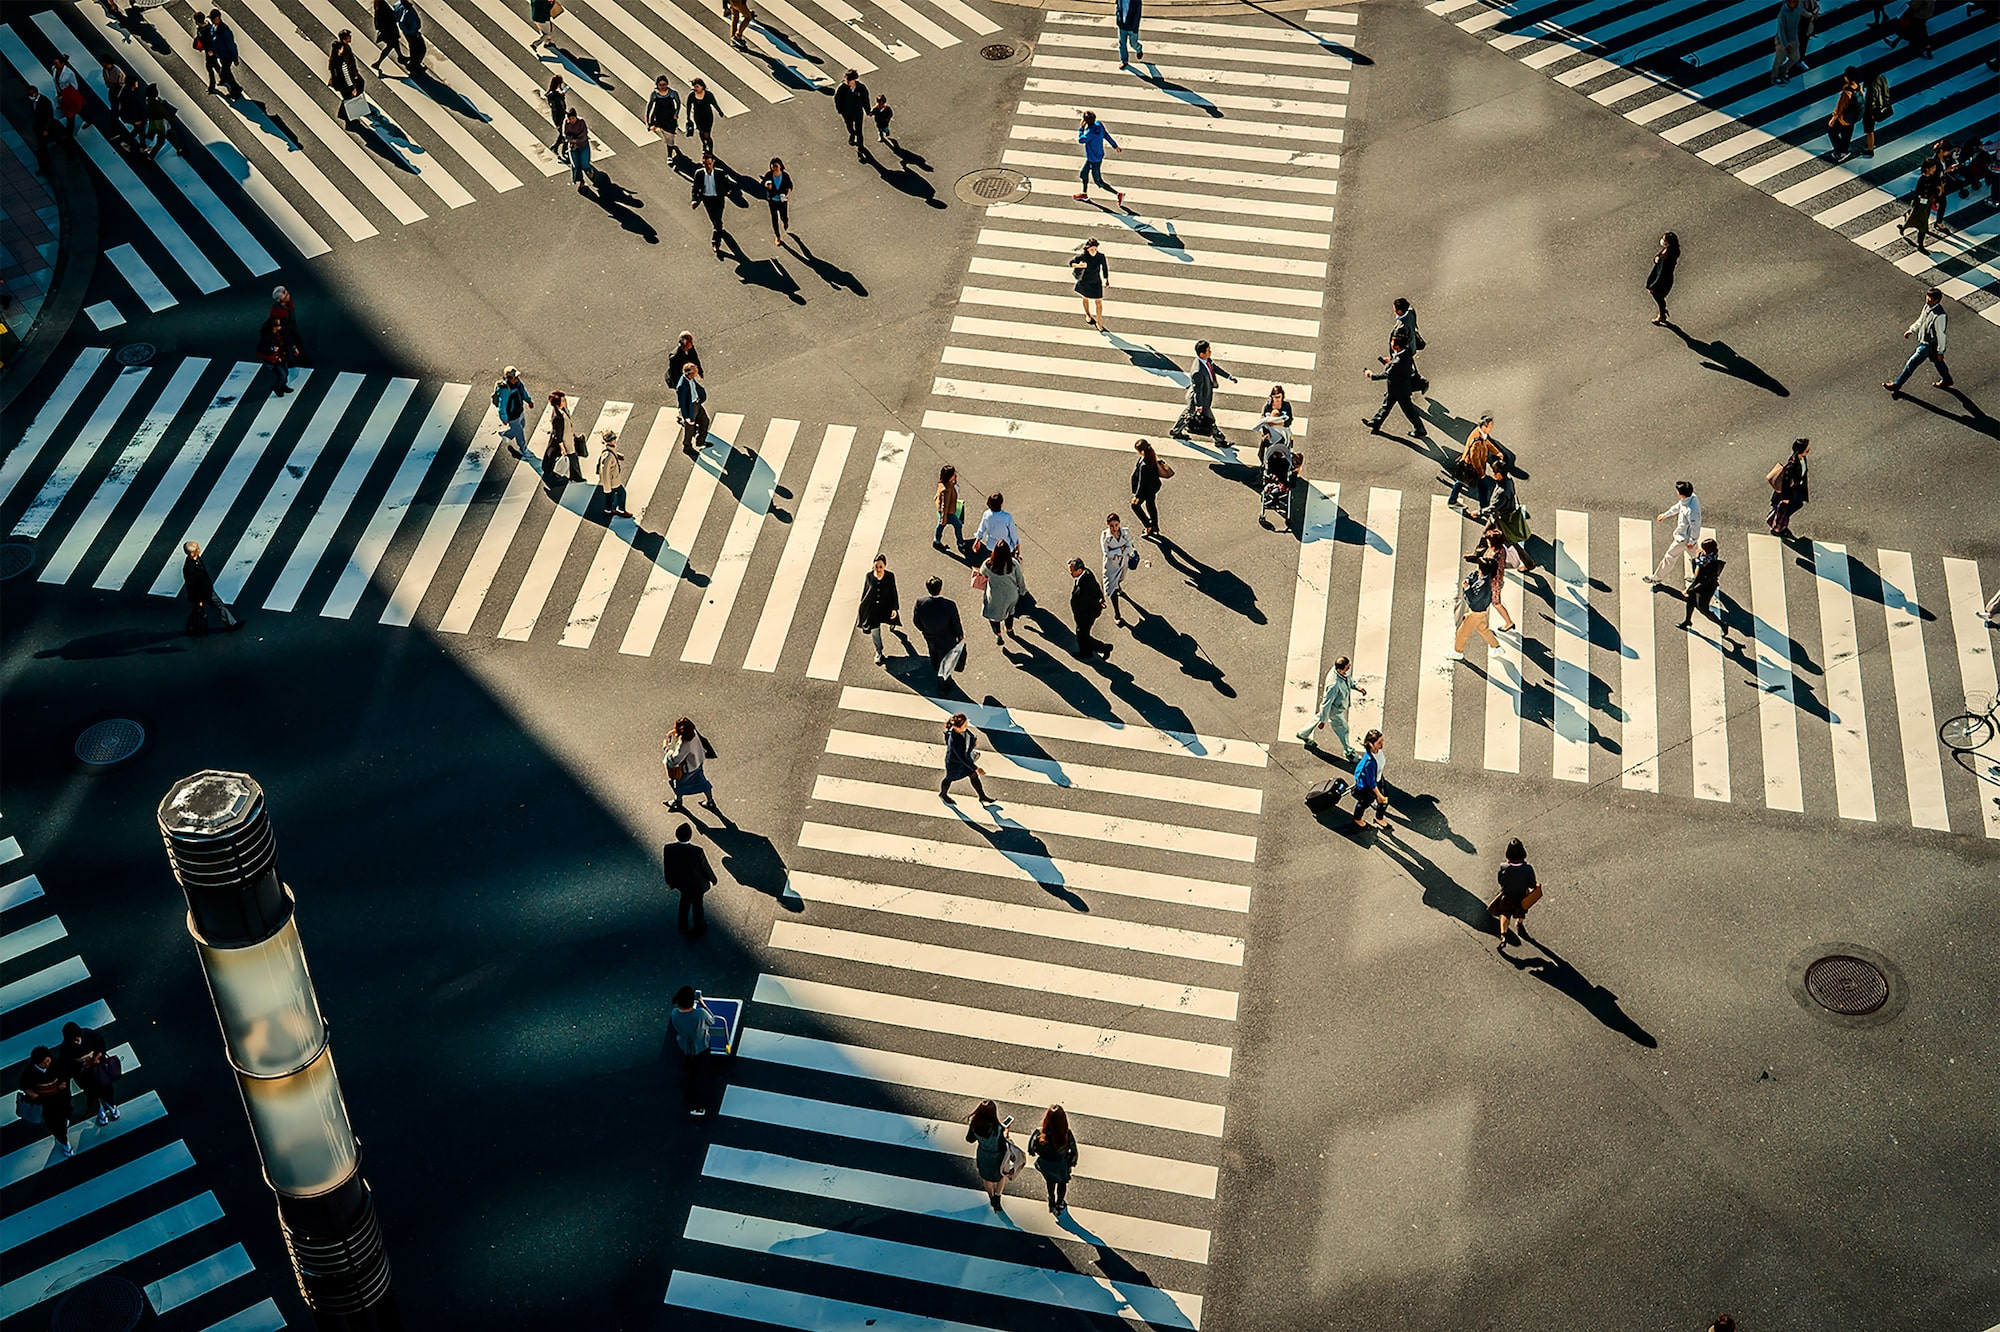 gabor erdelyi sony alpha 9 pedestrian crossing in half shadow with many people walking across